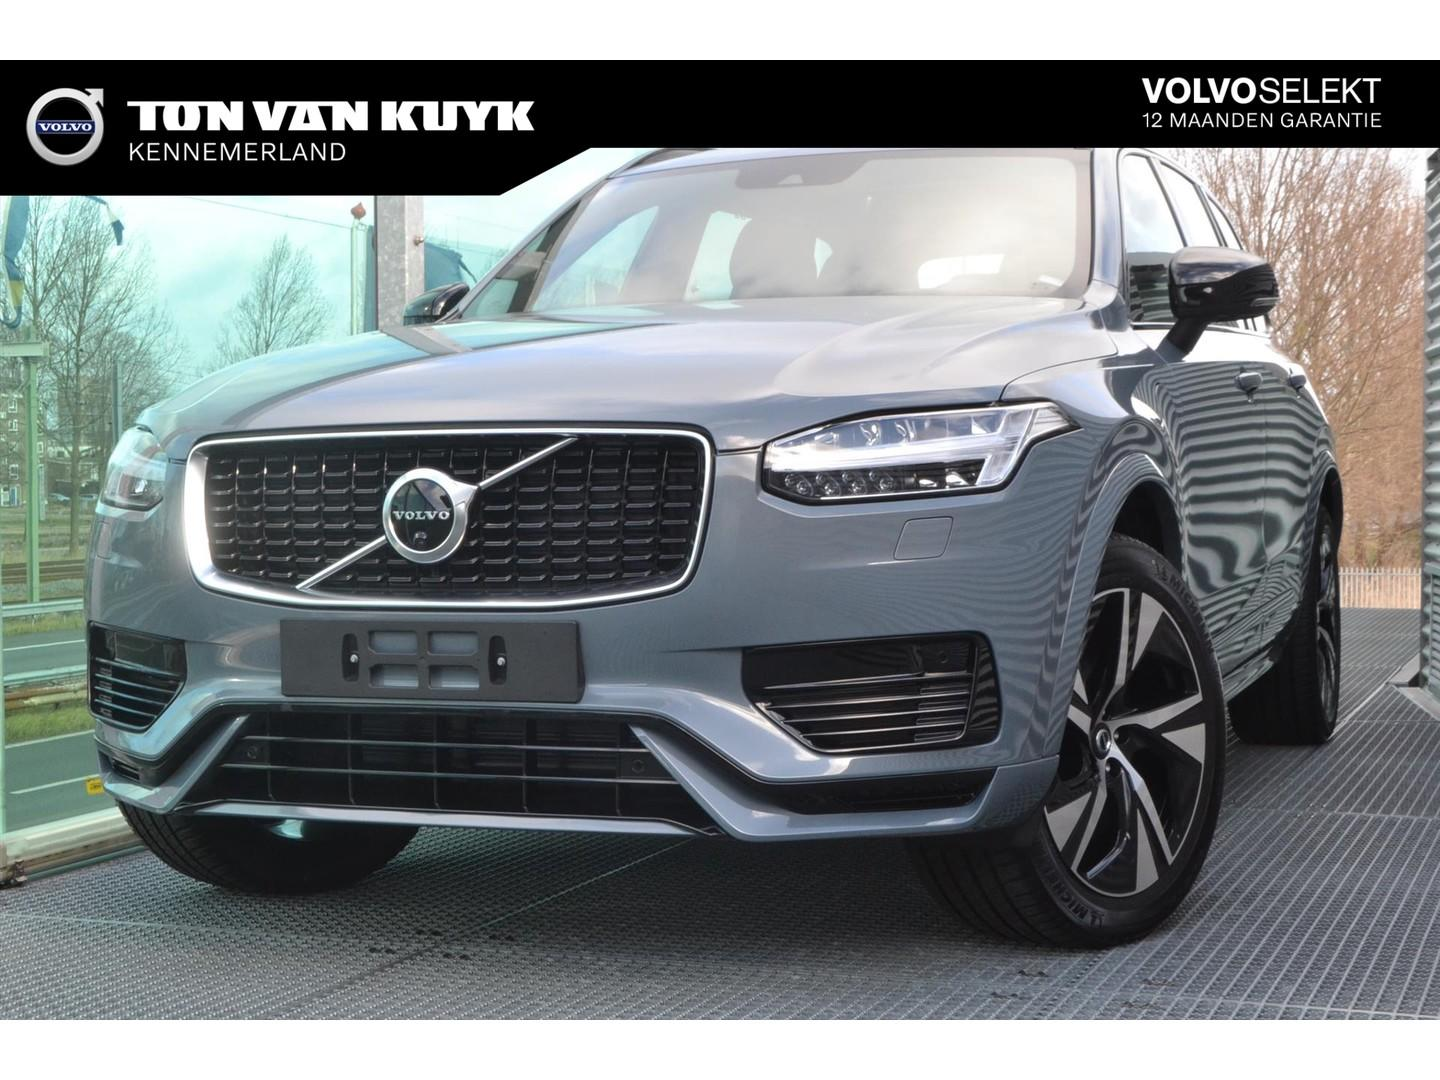 Volvo Xc90 T8 twin engine awd 390pk / r-design / intro edition / 7-persoons